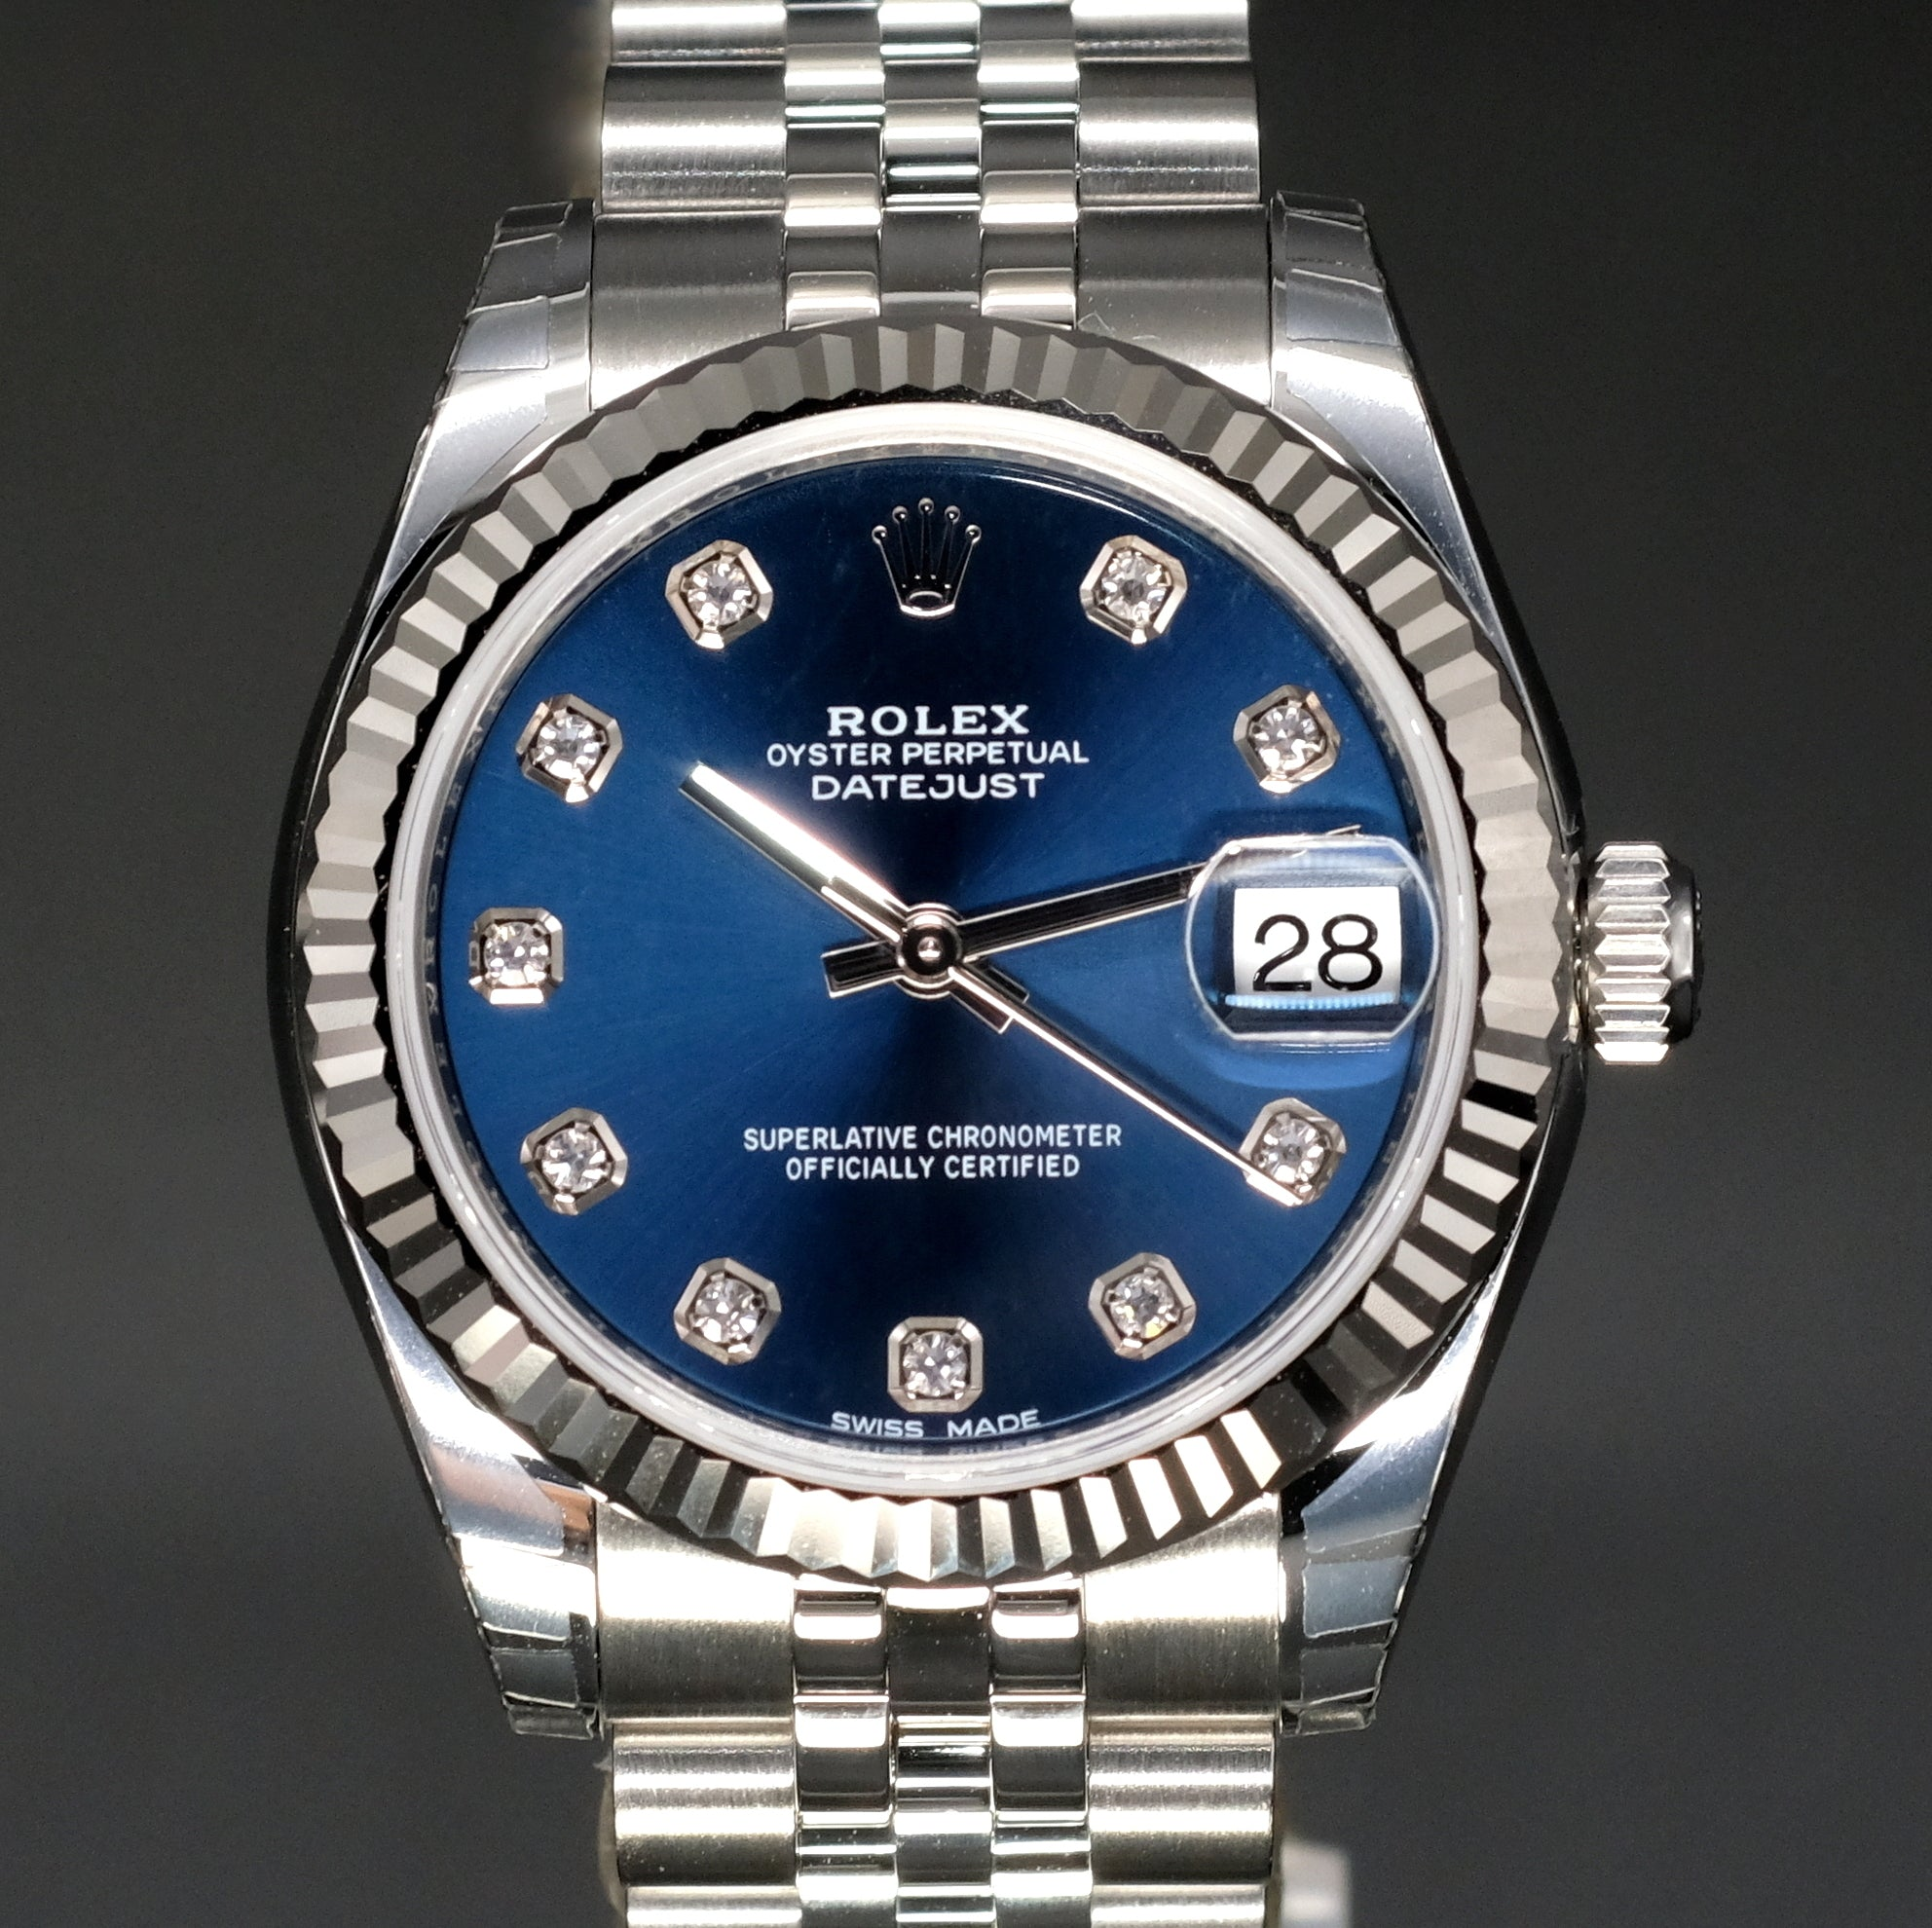 [Brand New Watch] Rolex Datejust 31mm 178274 Blue Dial with Diamonds (Jubilee Bracelet)